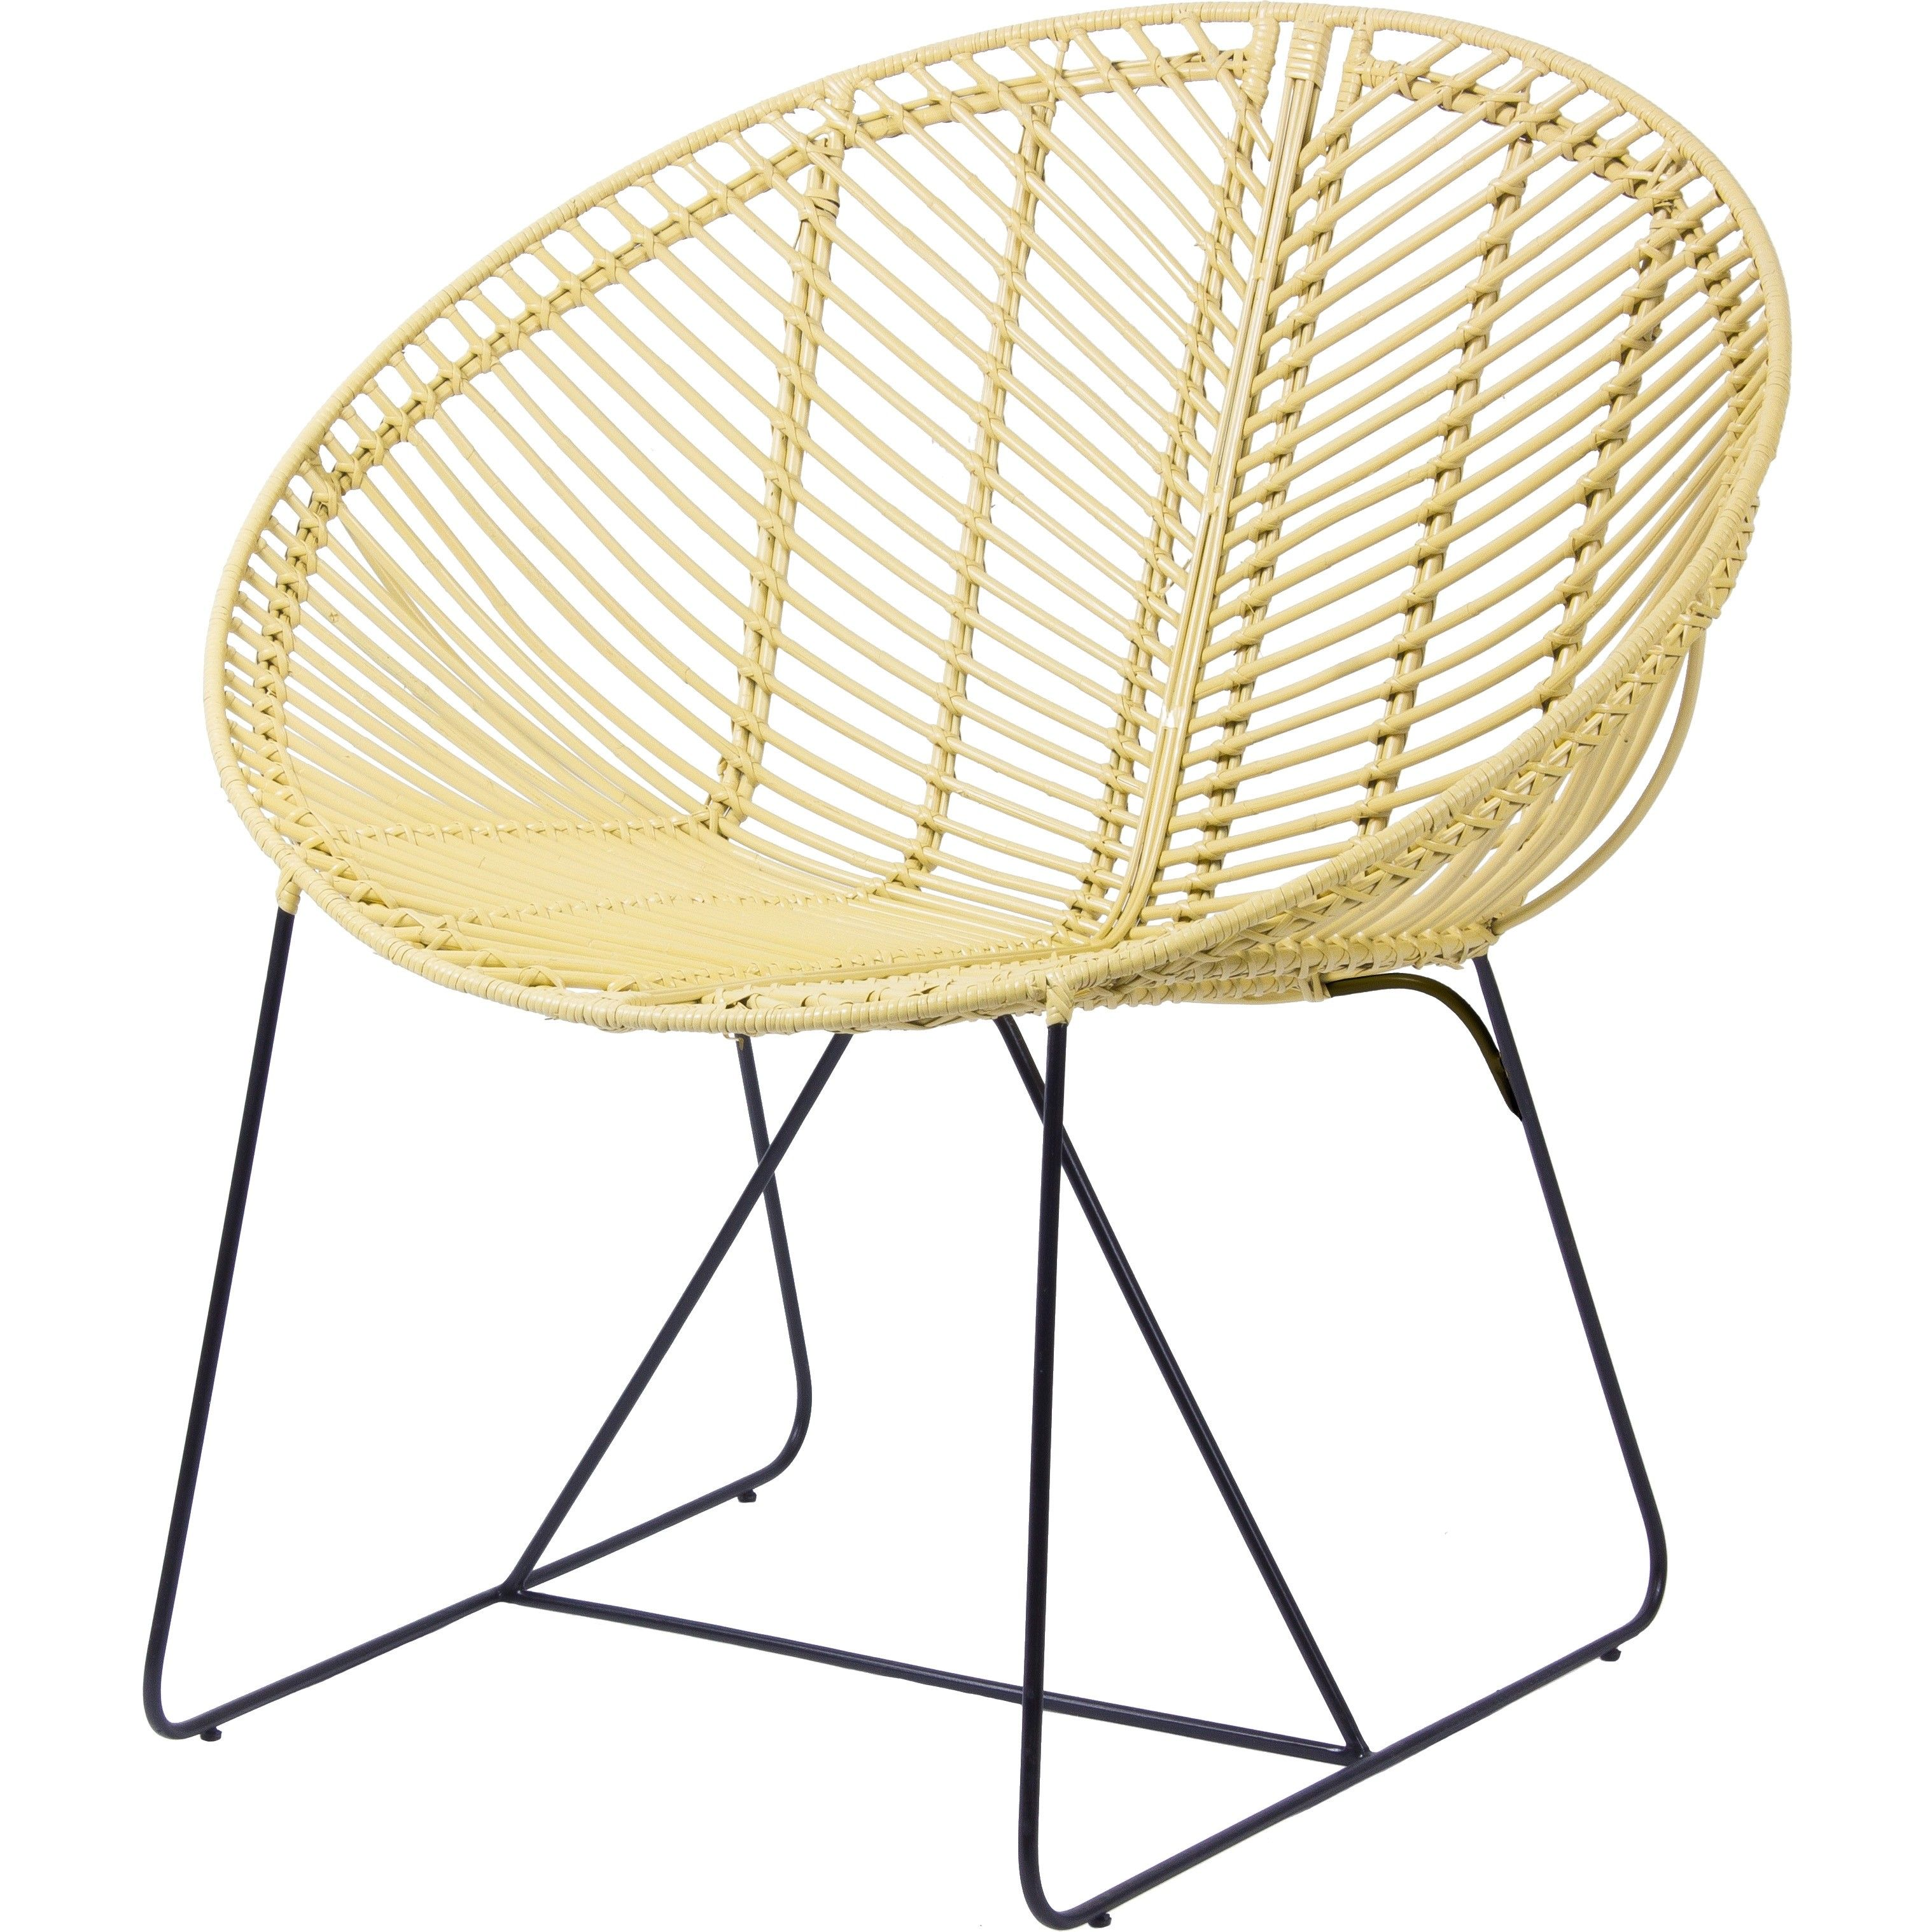 Effortless Design Comes Naturally With This Round Rattan Chair We Love The Light Finish And Black Hairpin Inspire Rattan Chair Adirondack Chair Cushions Chair